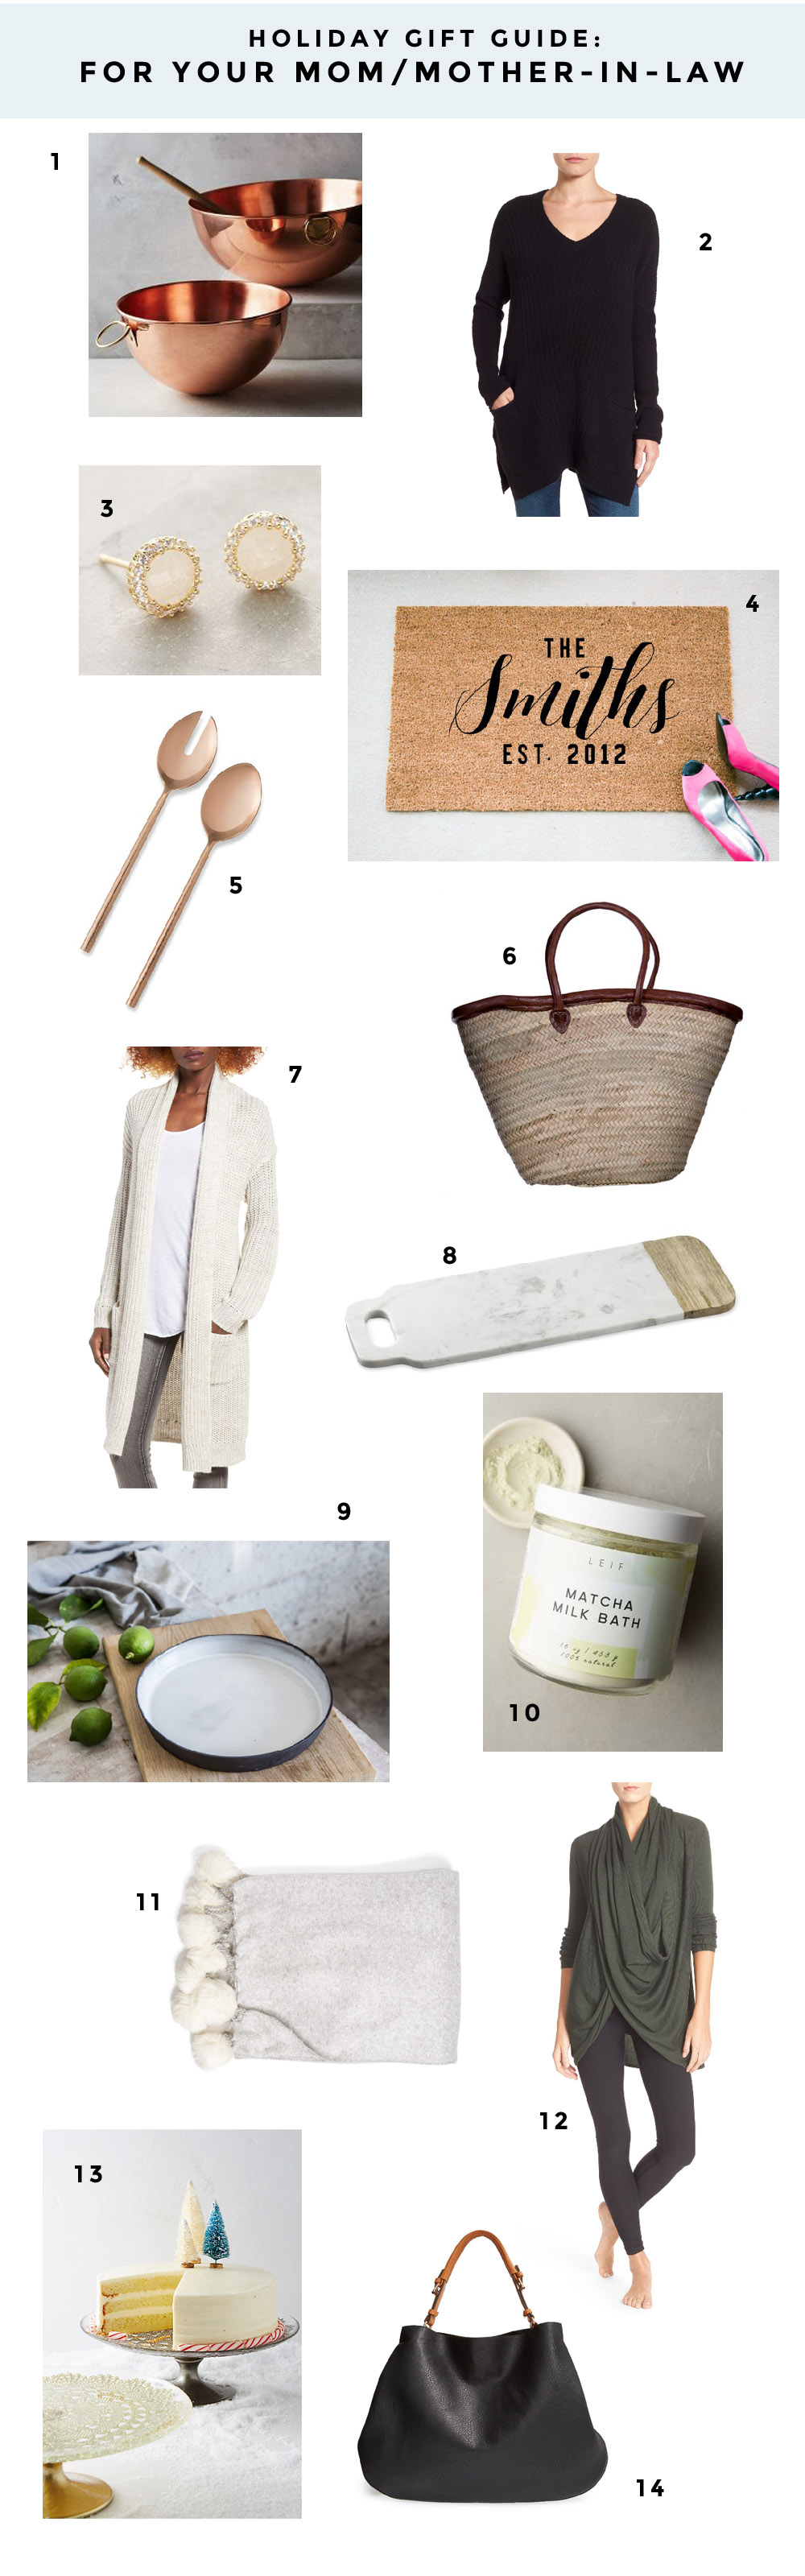 e-interiors-gift-guide-for-mom - GIFT IDEAS FOR MOM  sc 1 st  E. INTERIORS & Gift Ideas for Mom or Mother in Law | Gift Guides | E. INTERIORS